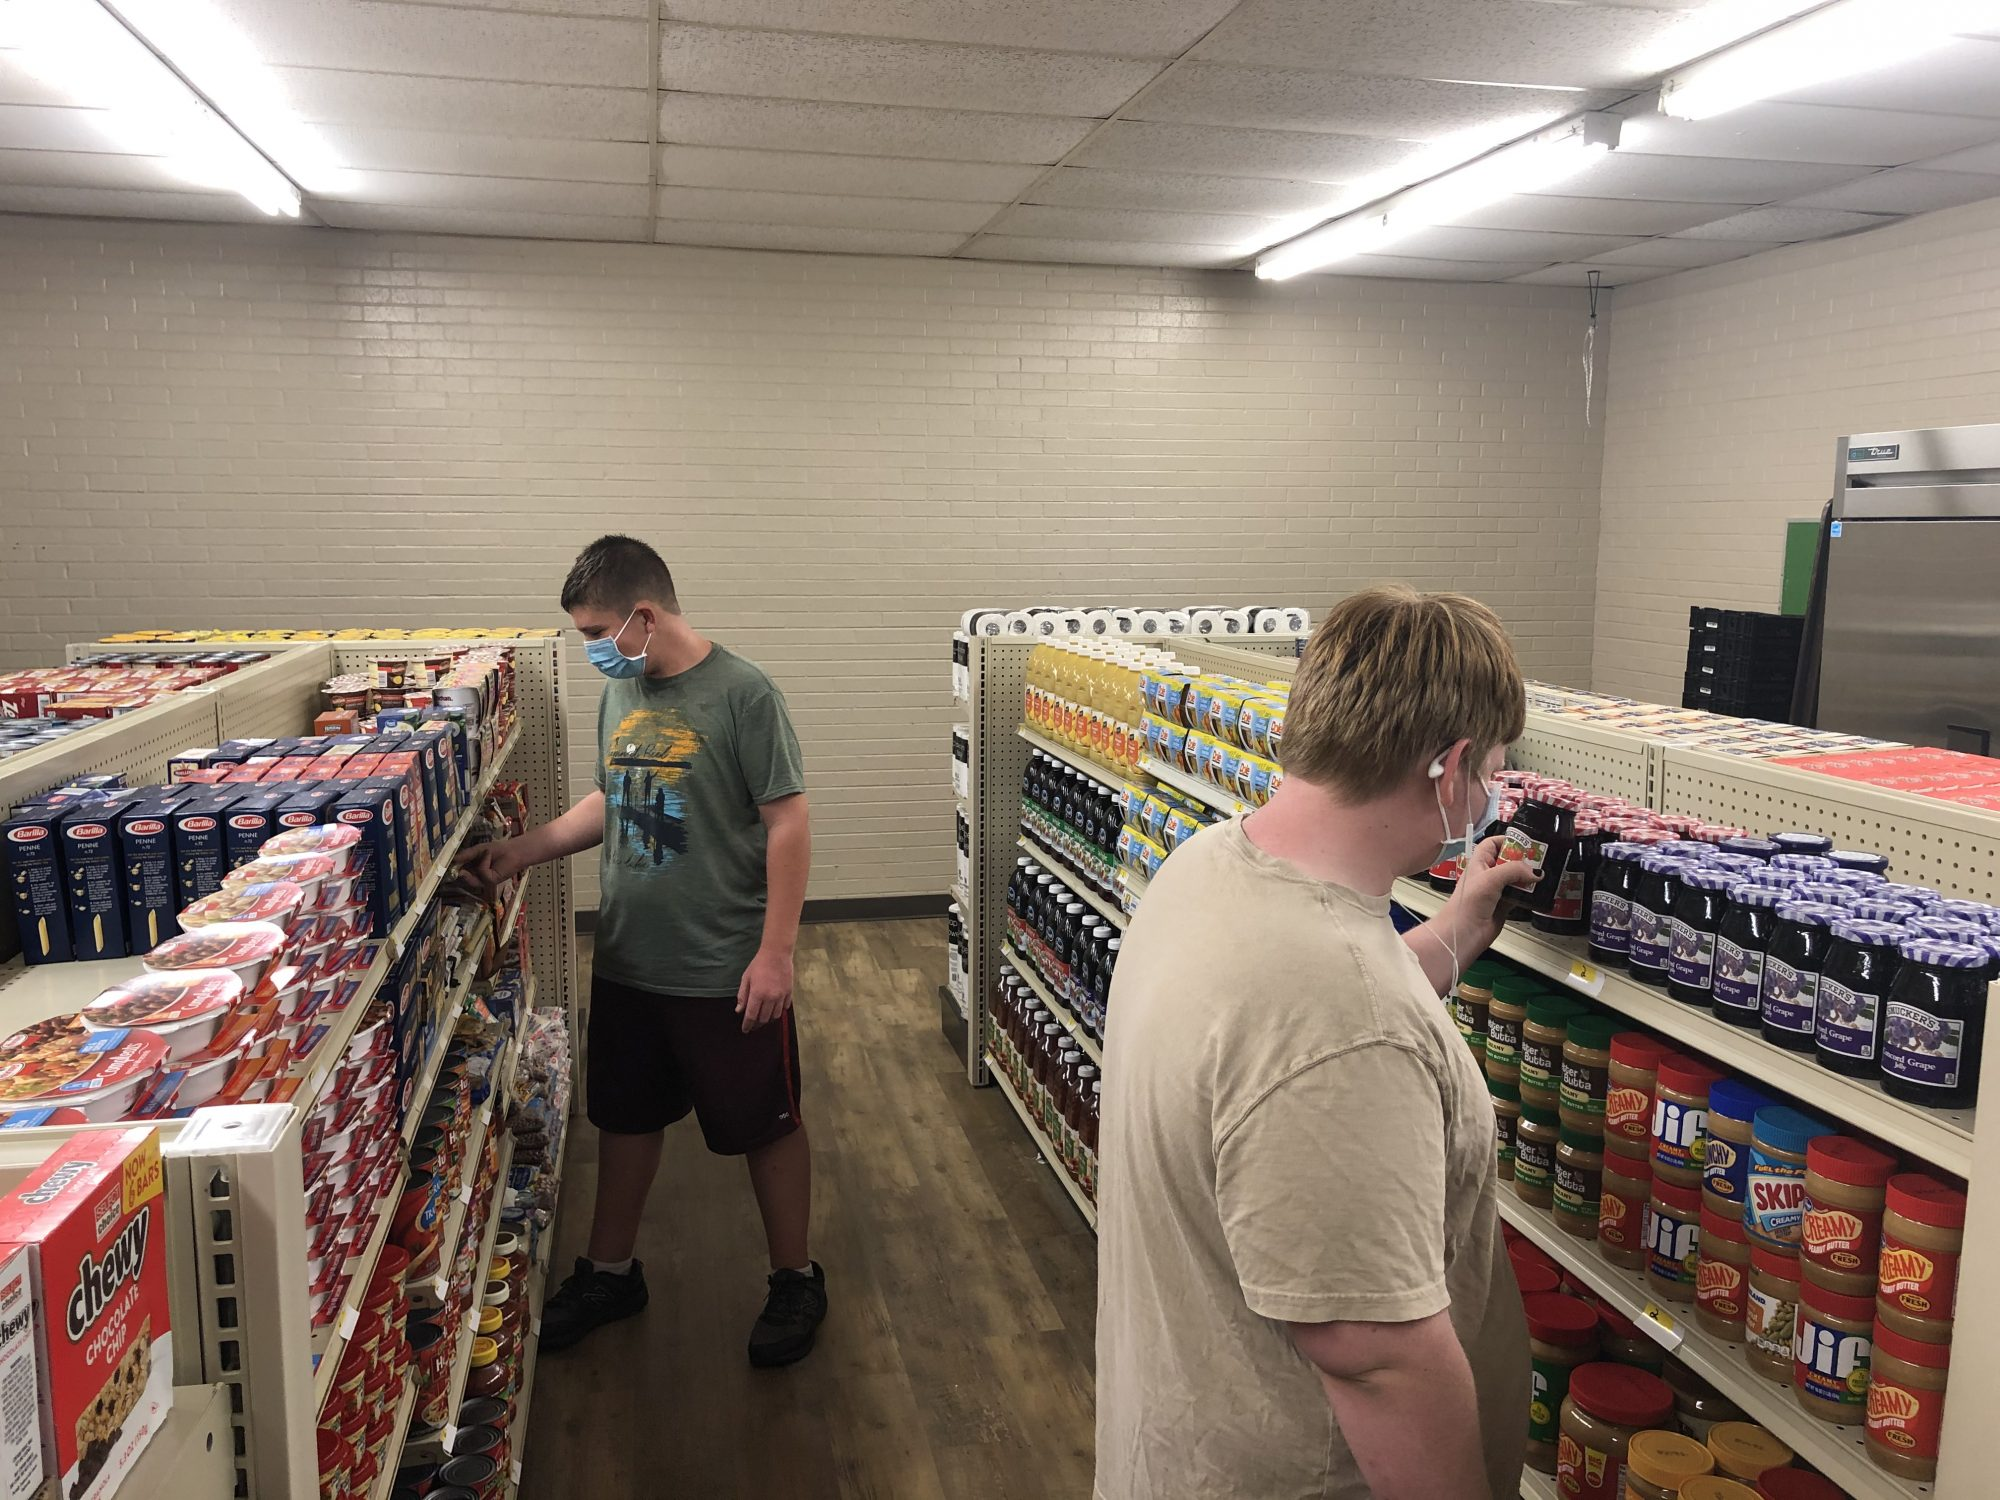 Linda Tutt High School Grocery Store